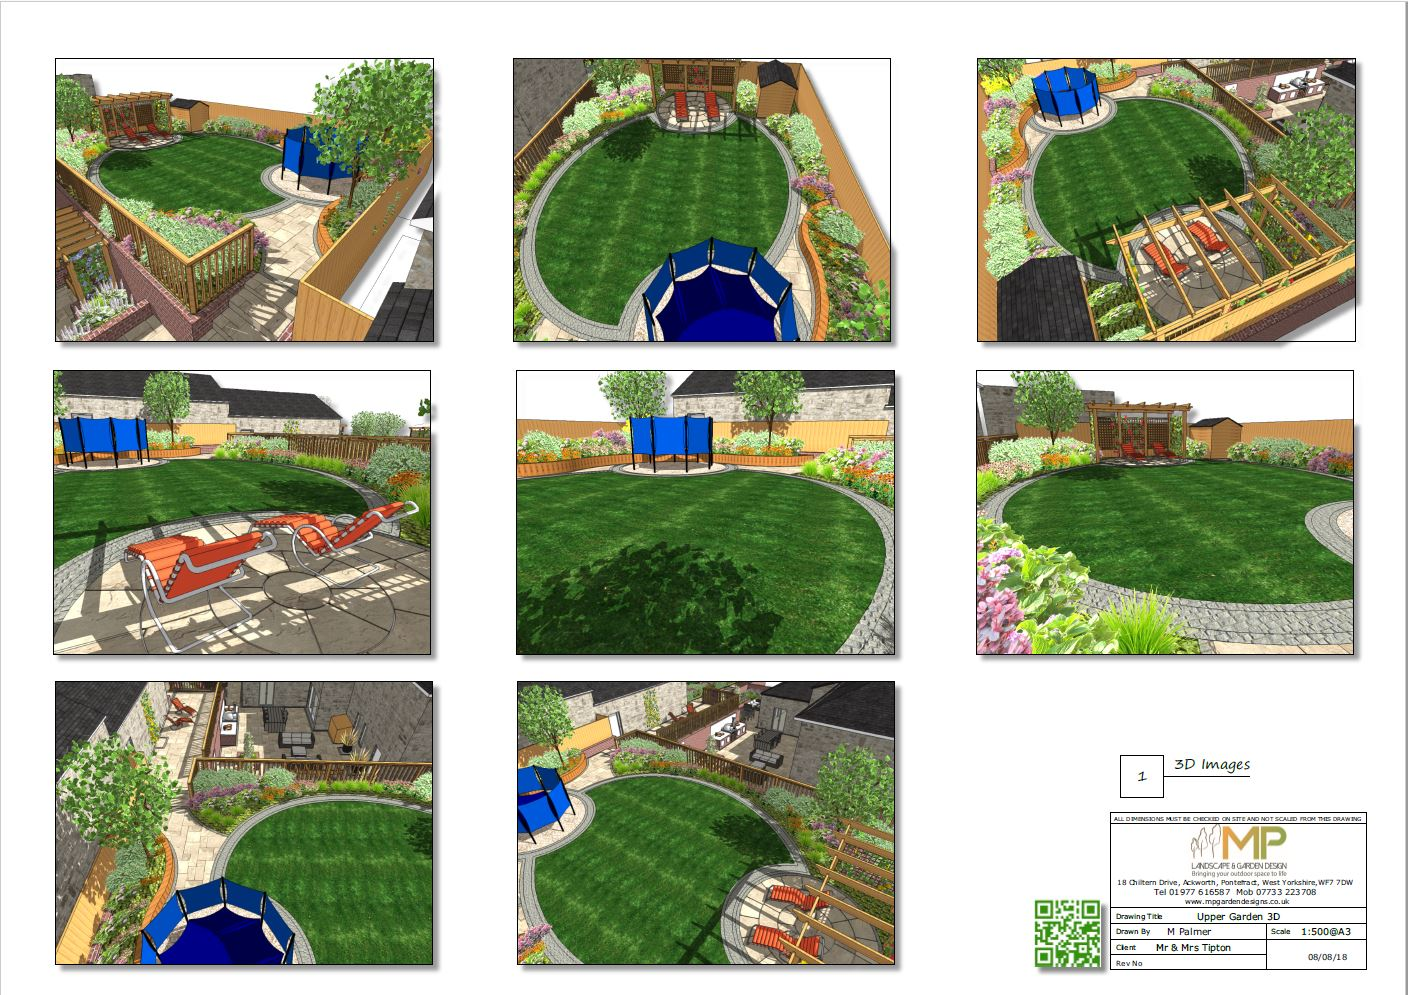 Garden layout plans 3D, for a property in Castleford.